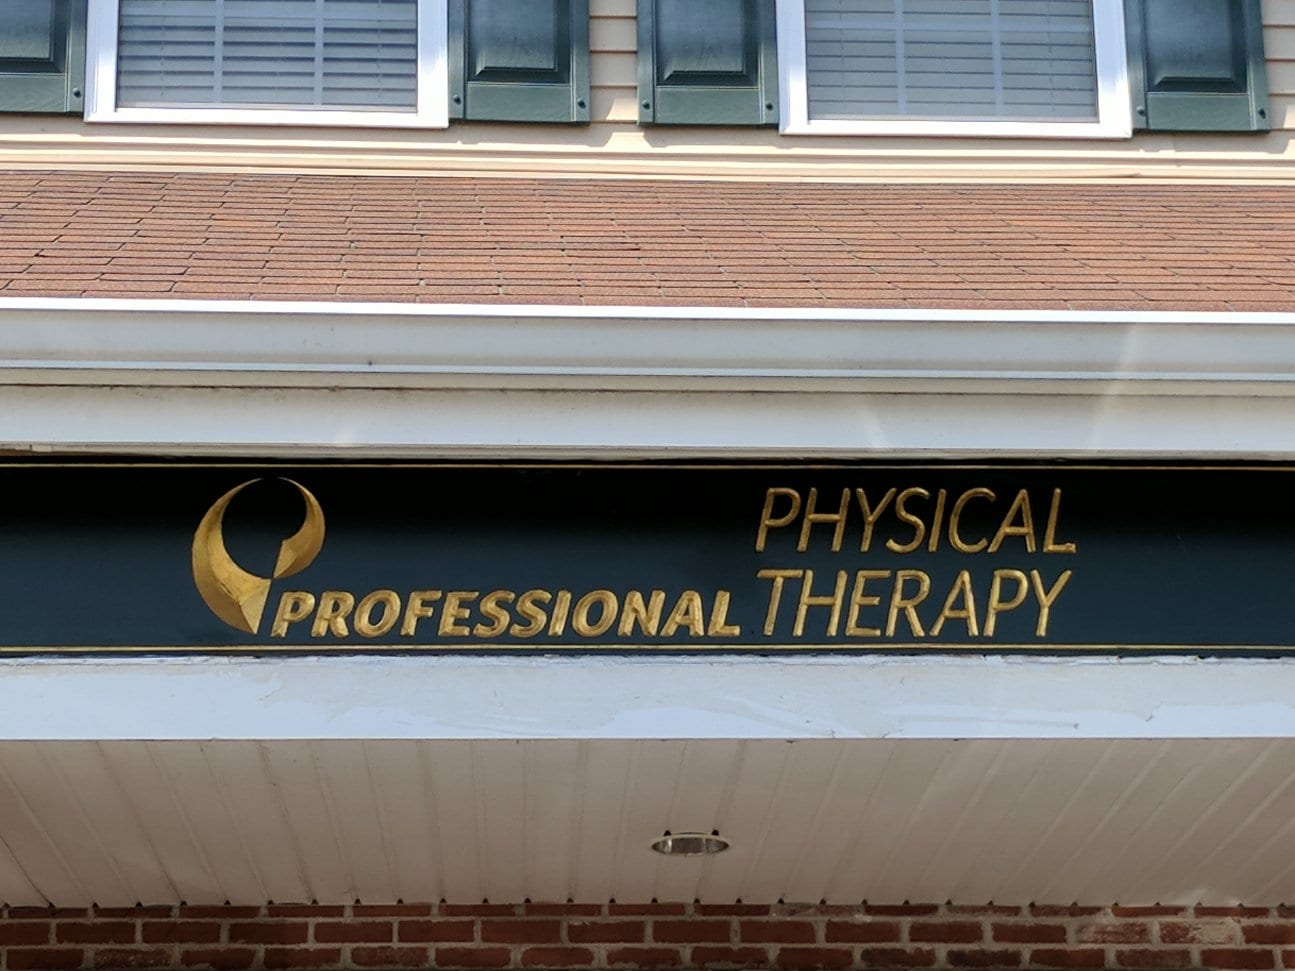 An image of our professional physical therapy sign at our clinic in Haskell, New Jersey.